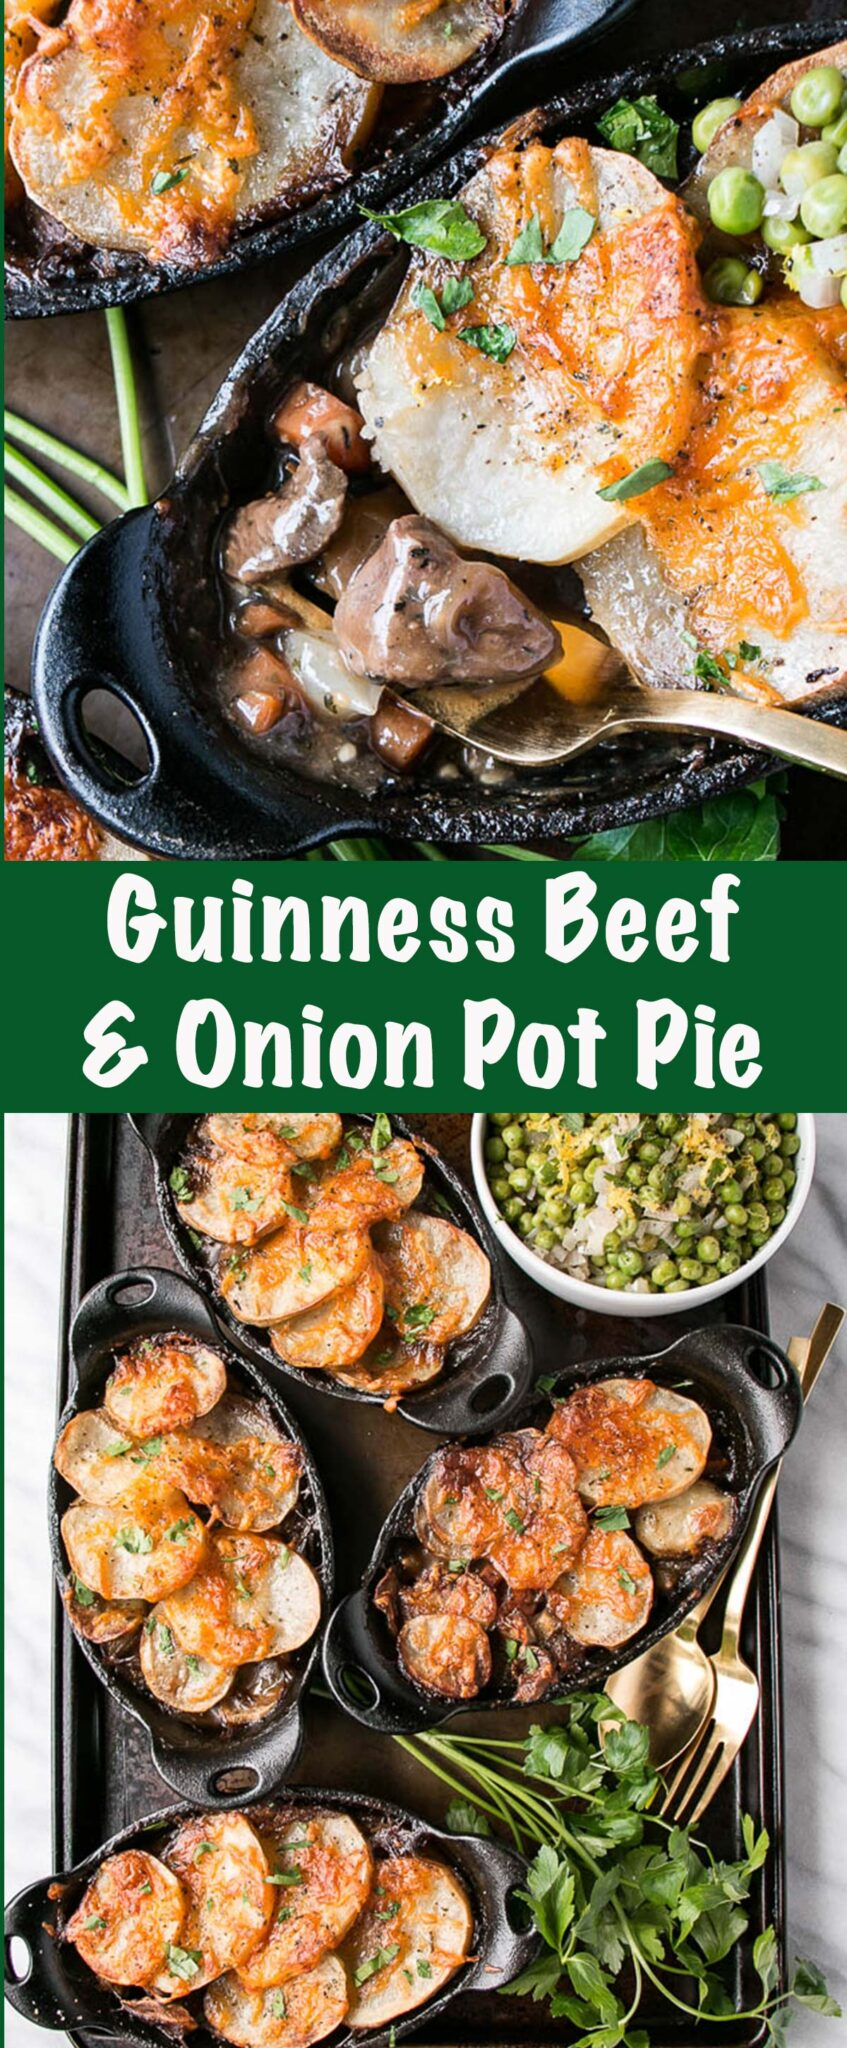 Guinness Beef and Onion Pot Pie PIN